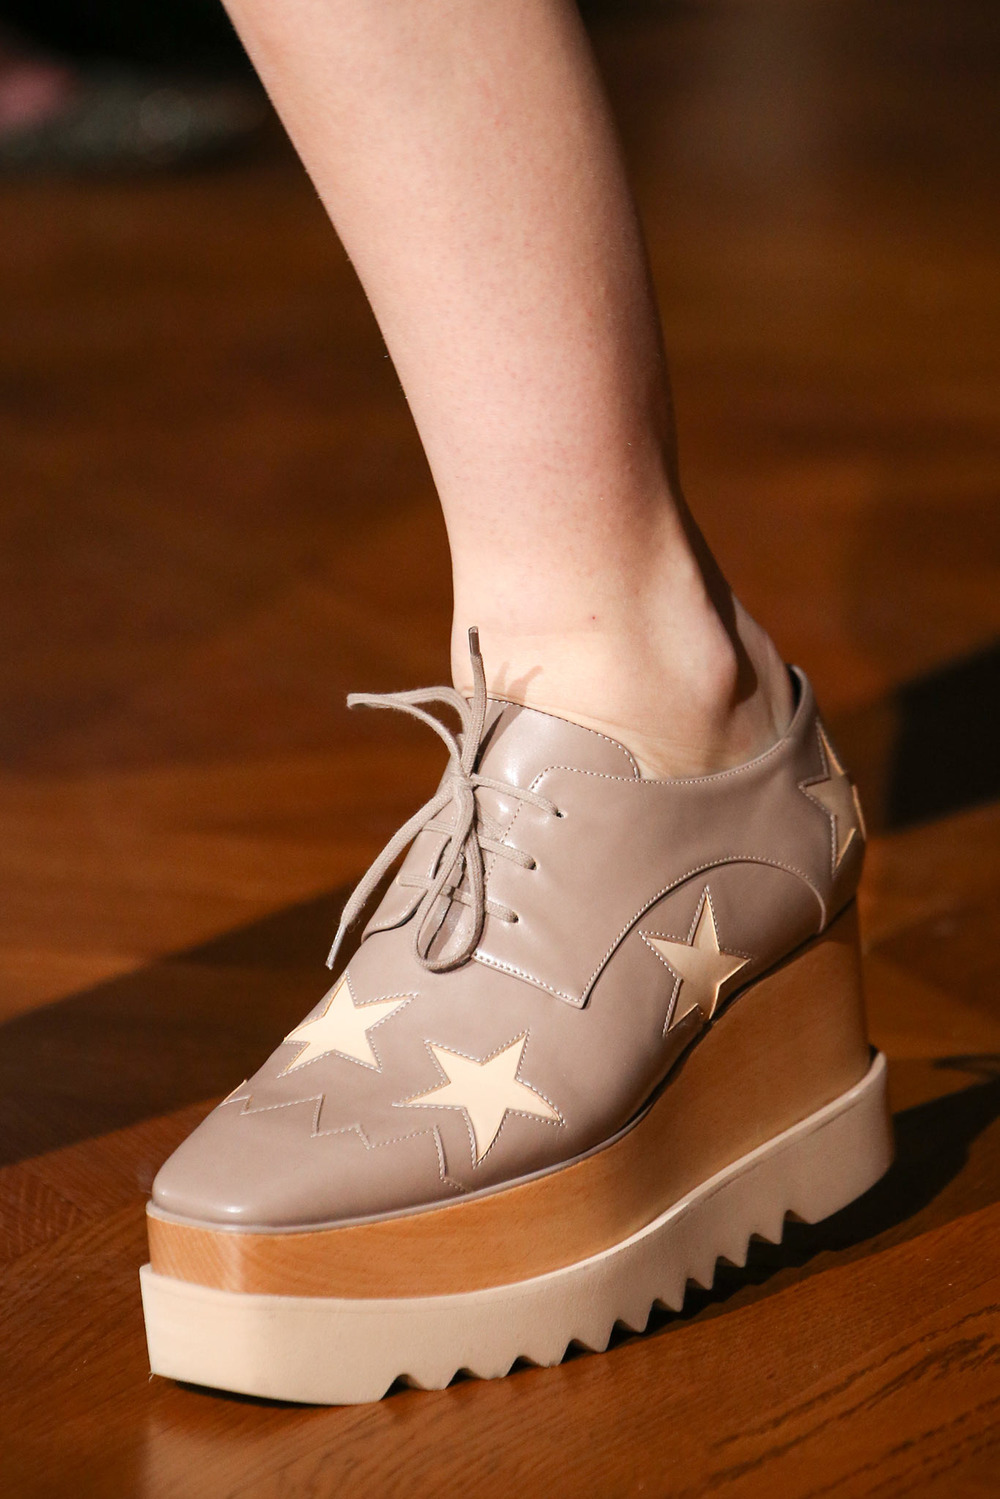 Stella-McCartney-Fall-2014-Platform-Shoes.jpg